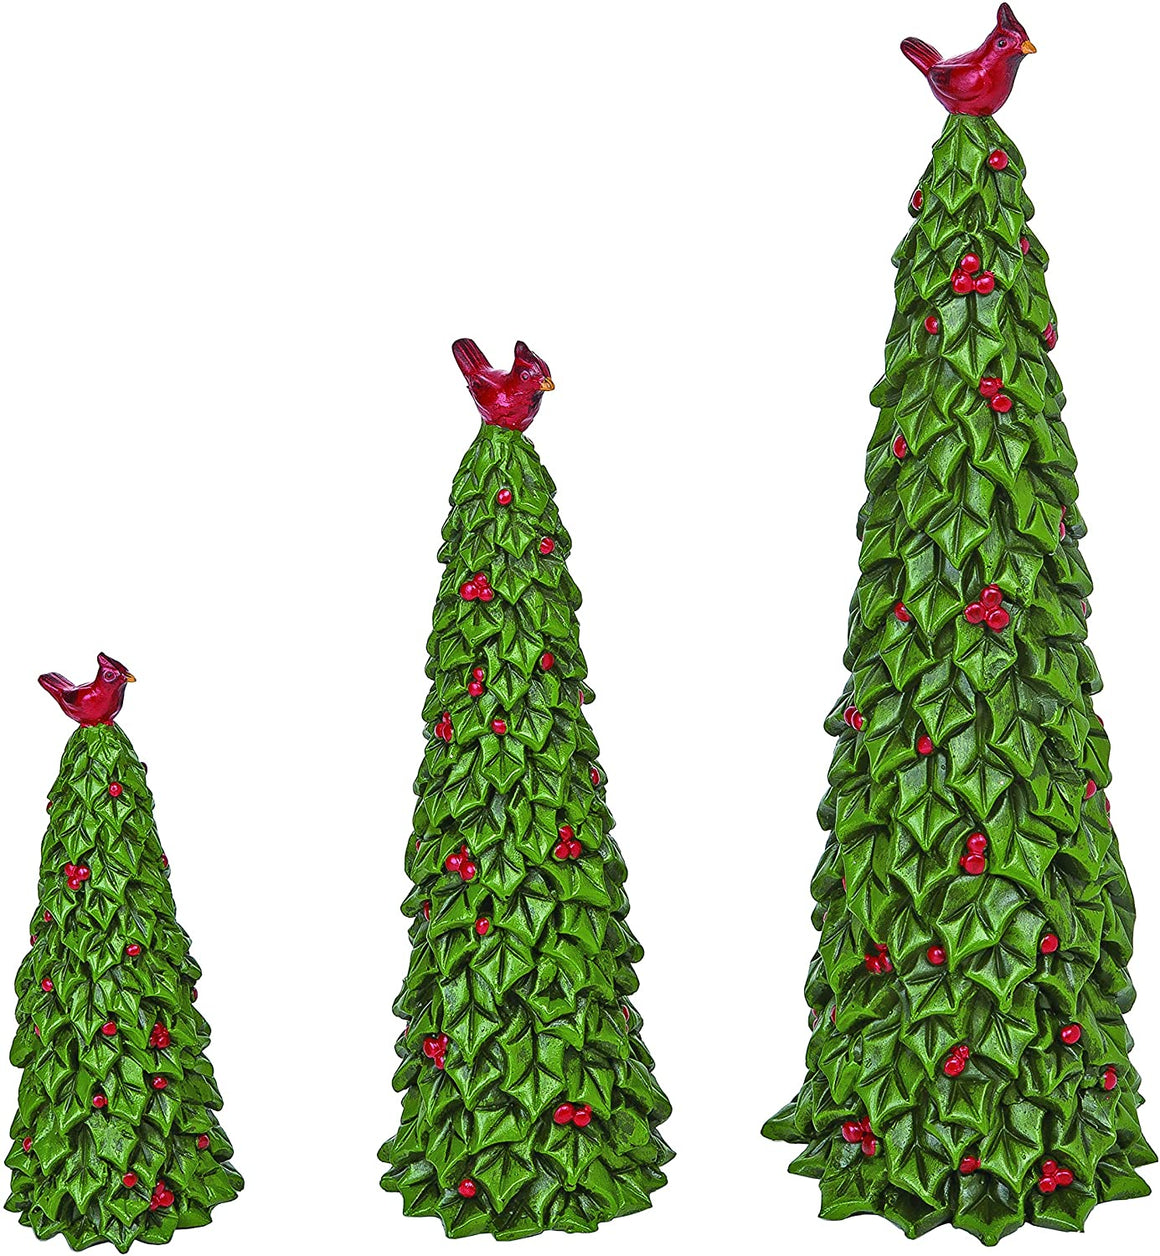 Set of 3 Sculpted Resin Holly Christmas Trees with Red Cardinals and Berries, 6, 9 and 12 Inches High